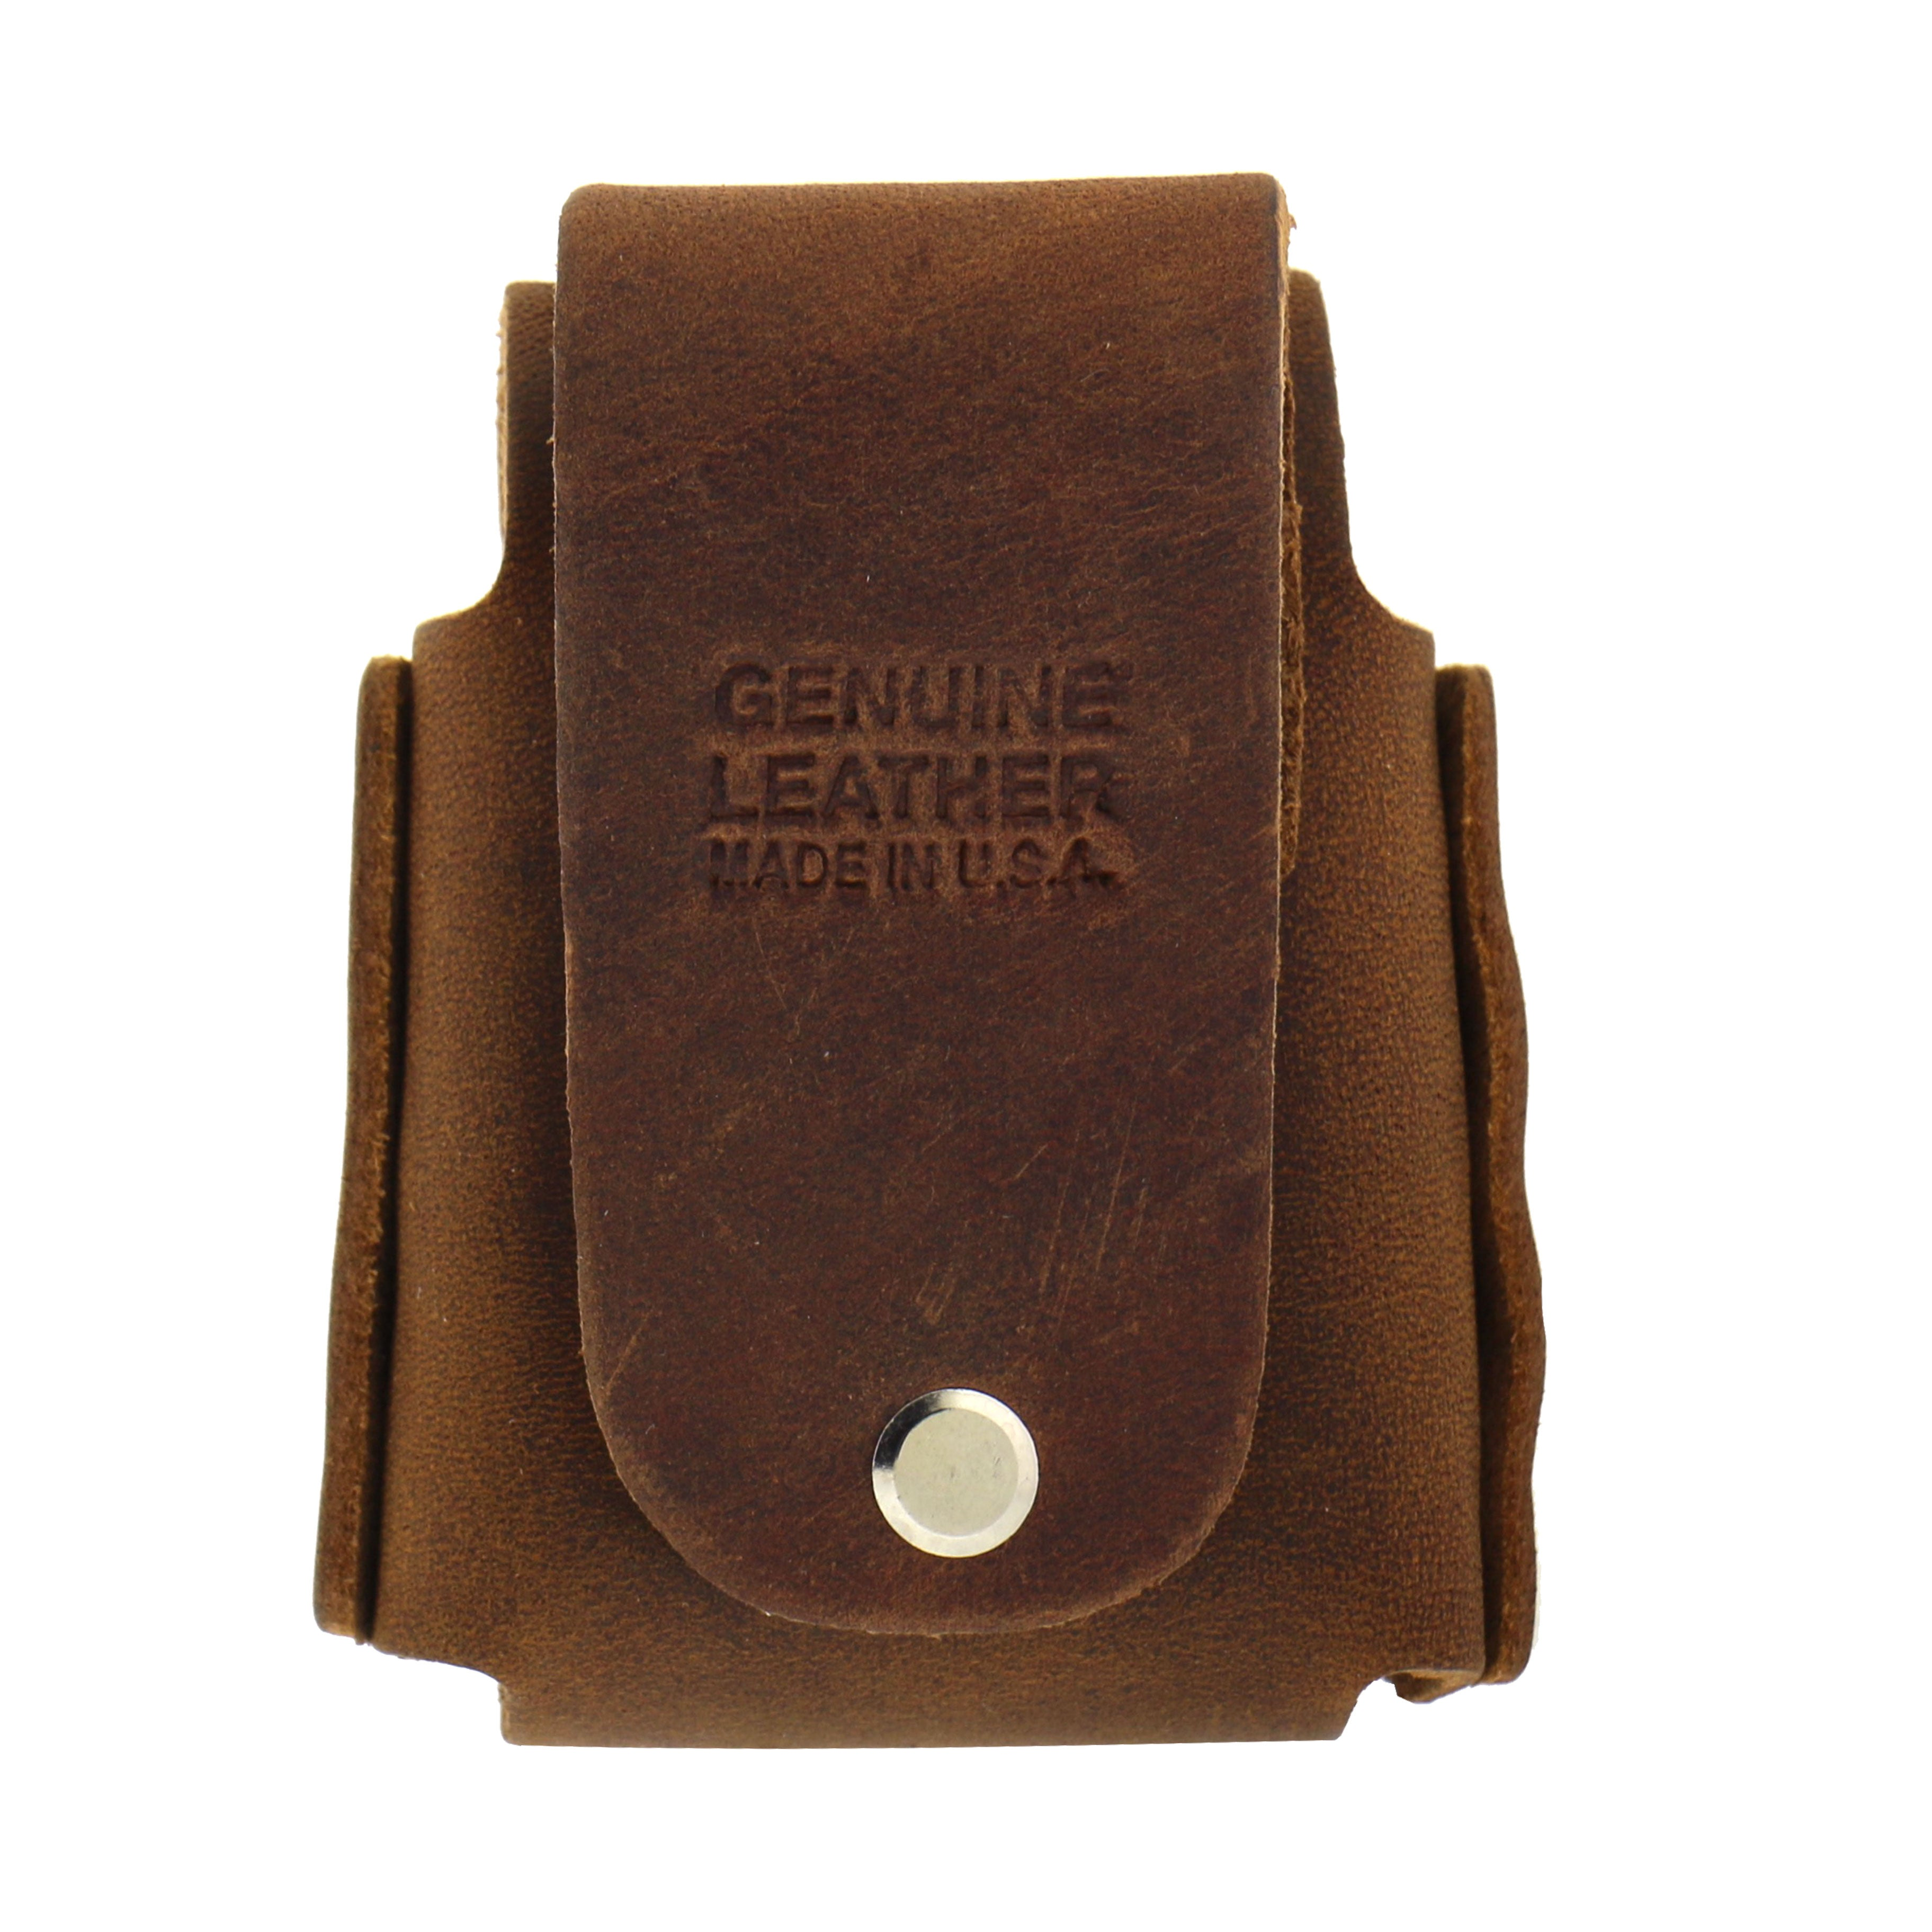 Hot Leathers Zippo Case with Concho